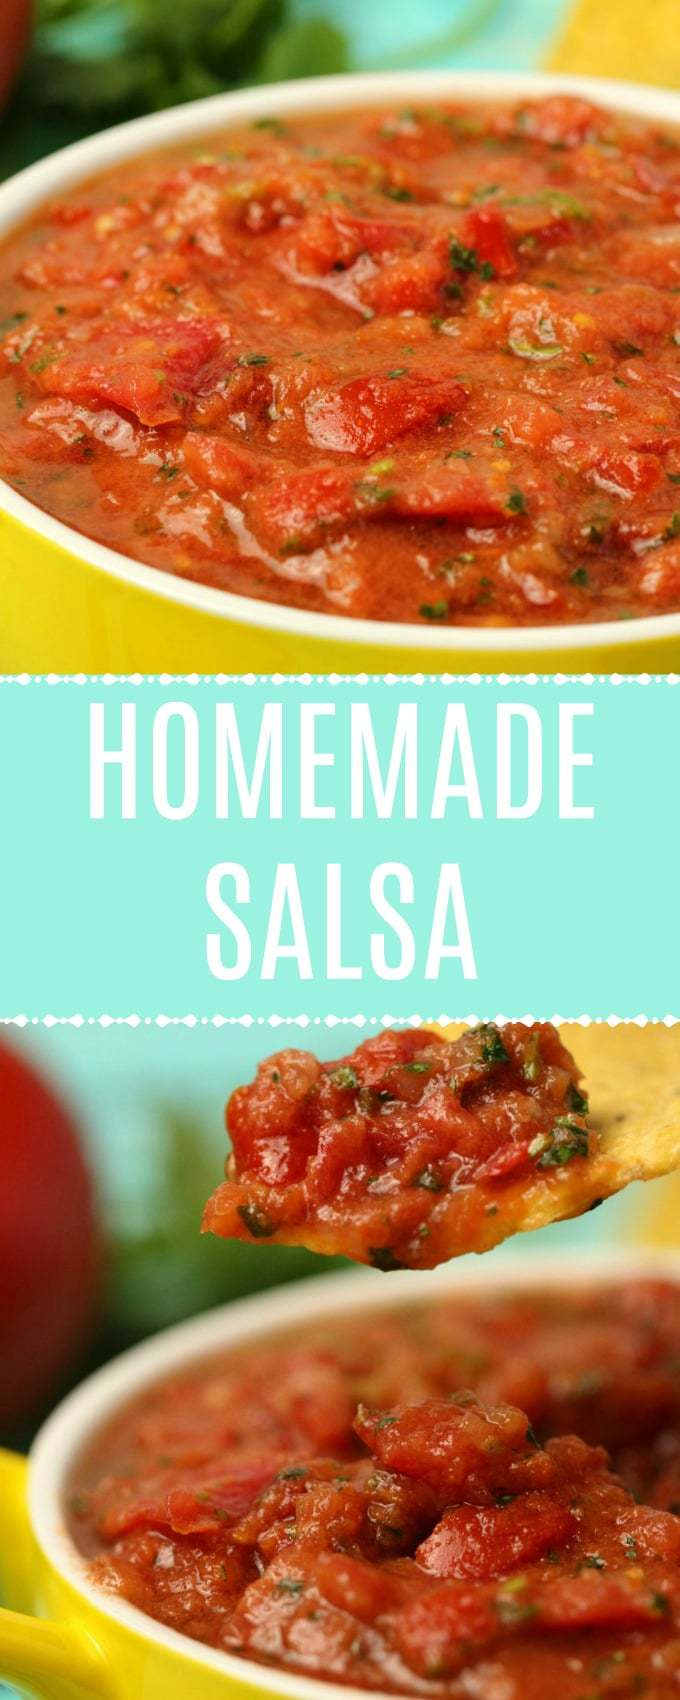 Ultra fresh restaurant-style homemade salsa. This saucy salsa is super fast and simple to prepare and makes a fabulous dip for your corn chips! | lovingitvegan.com